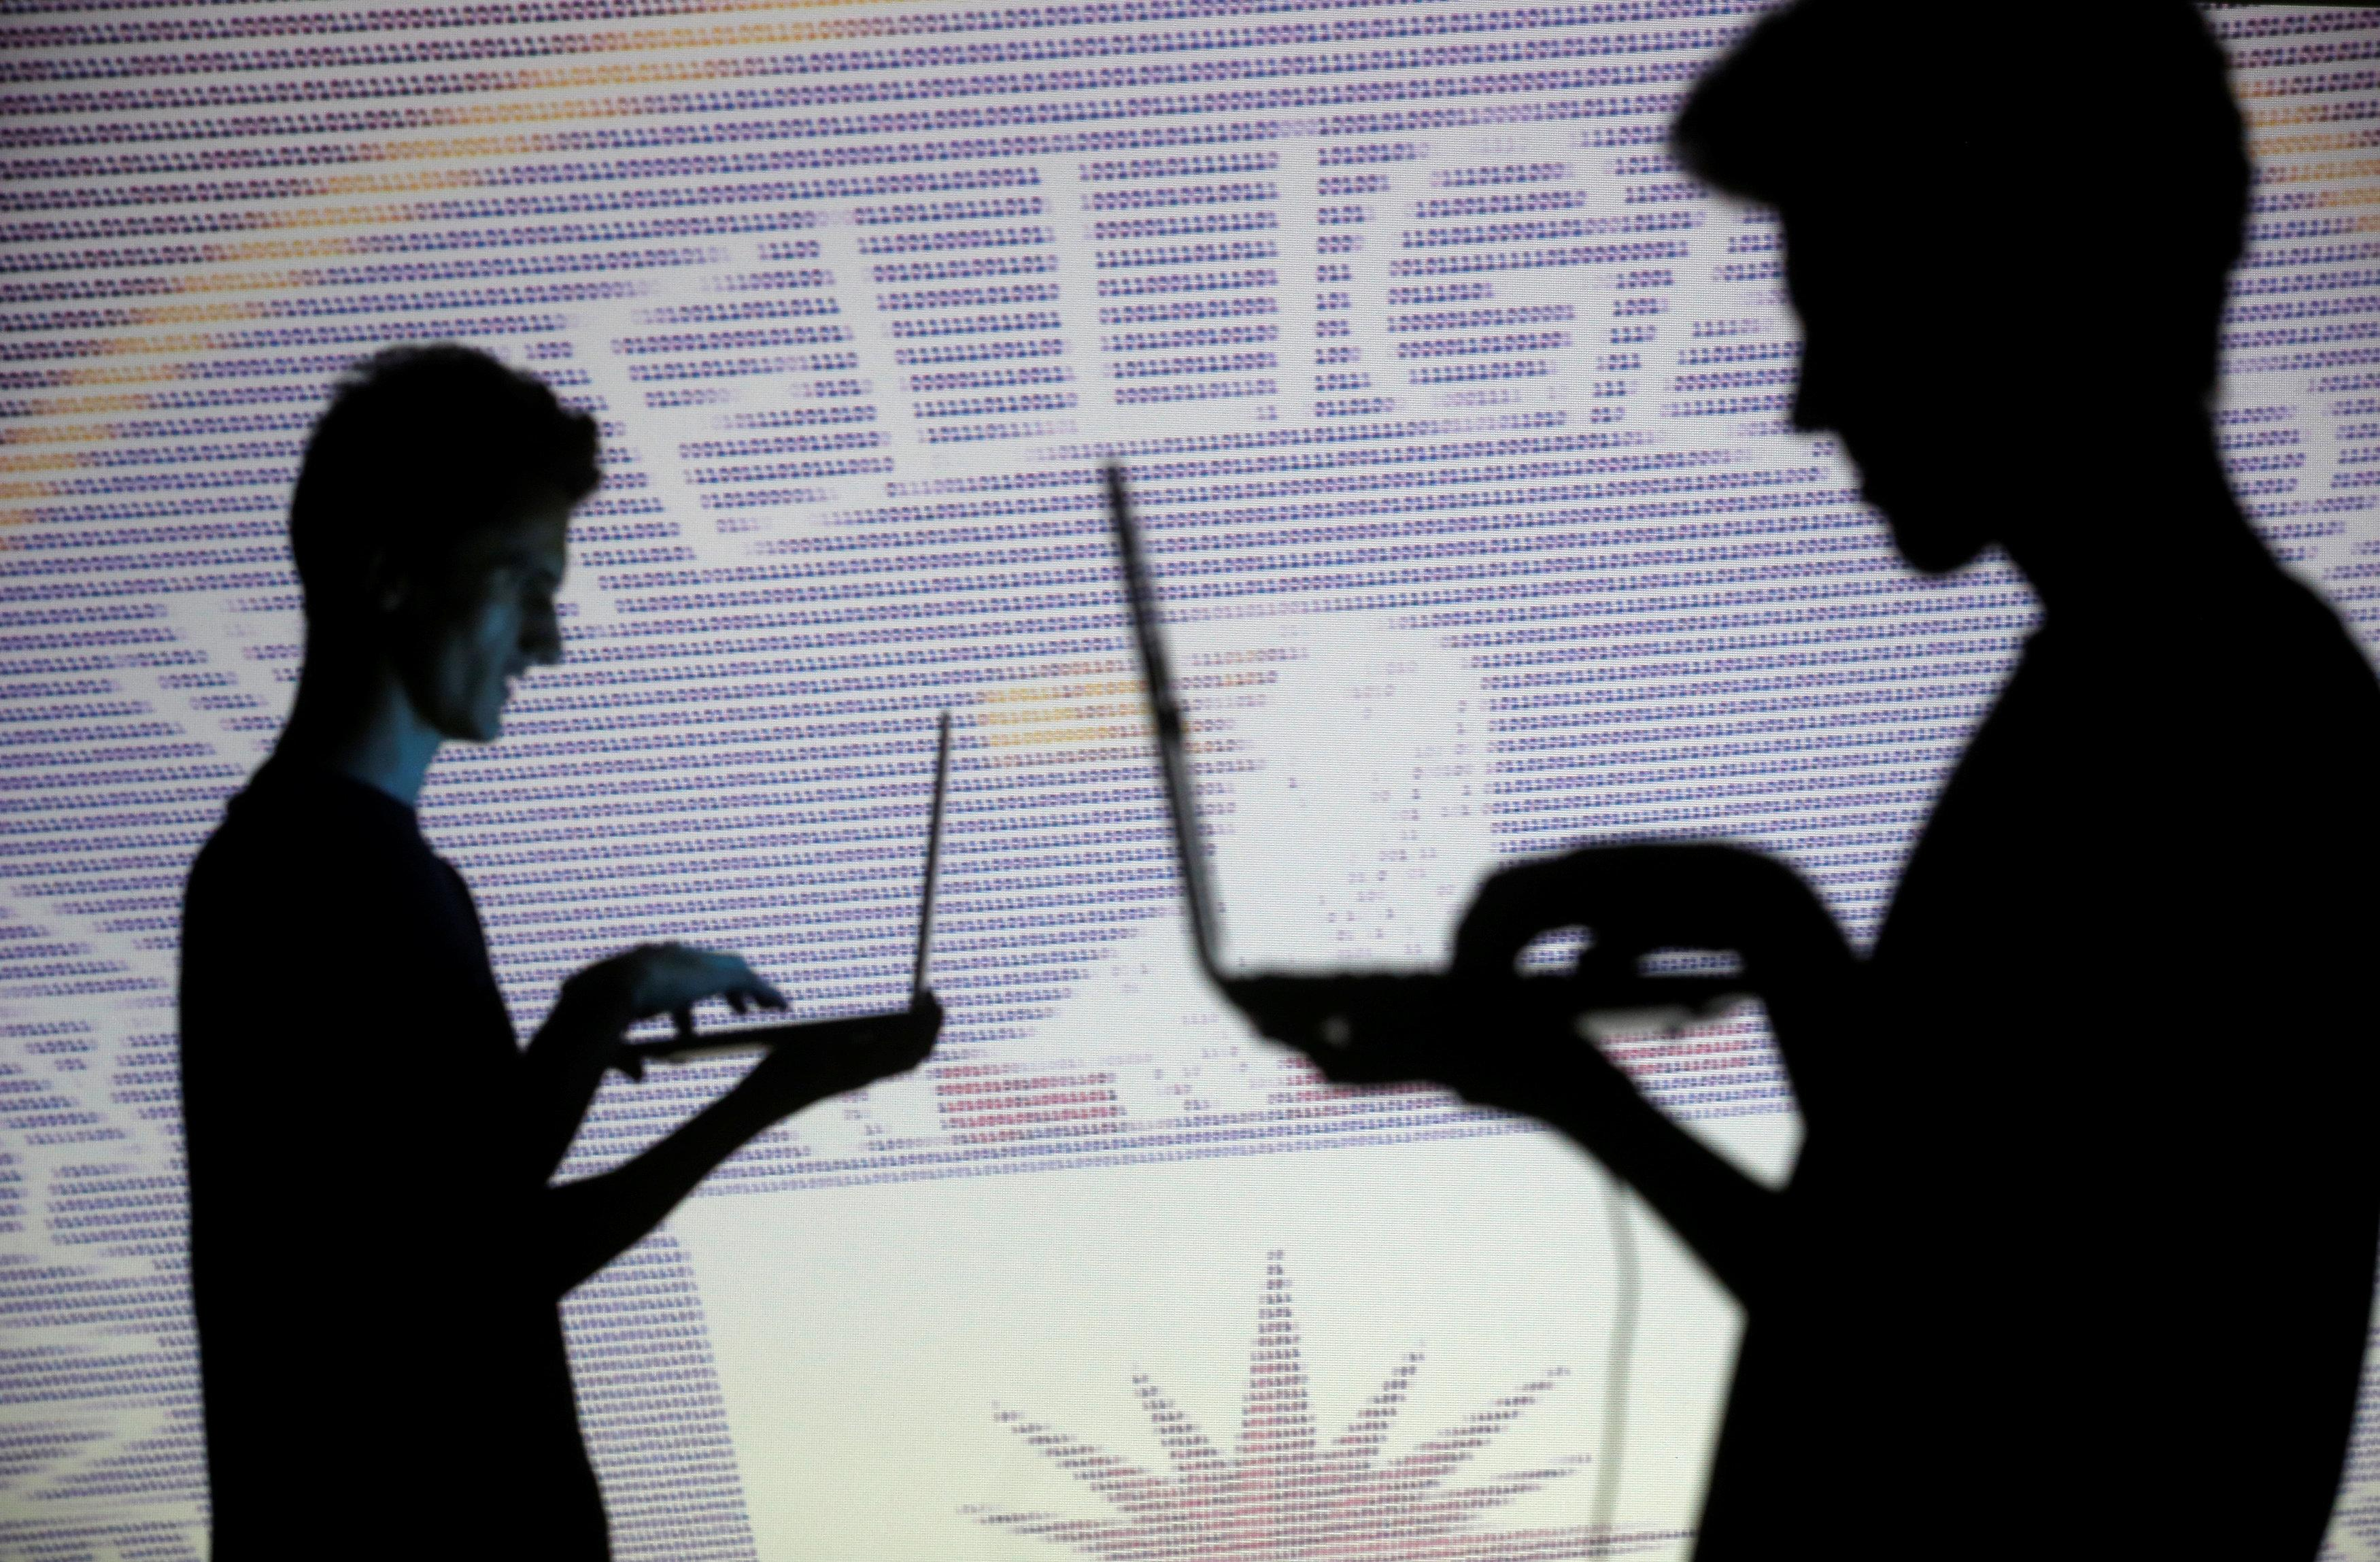 Cyber expert's arrest silences Russian contacts of some Western...